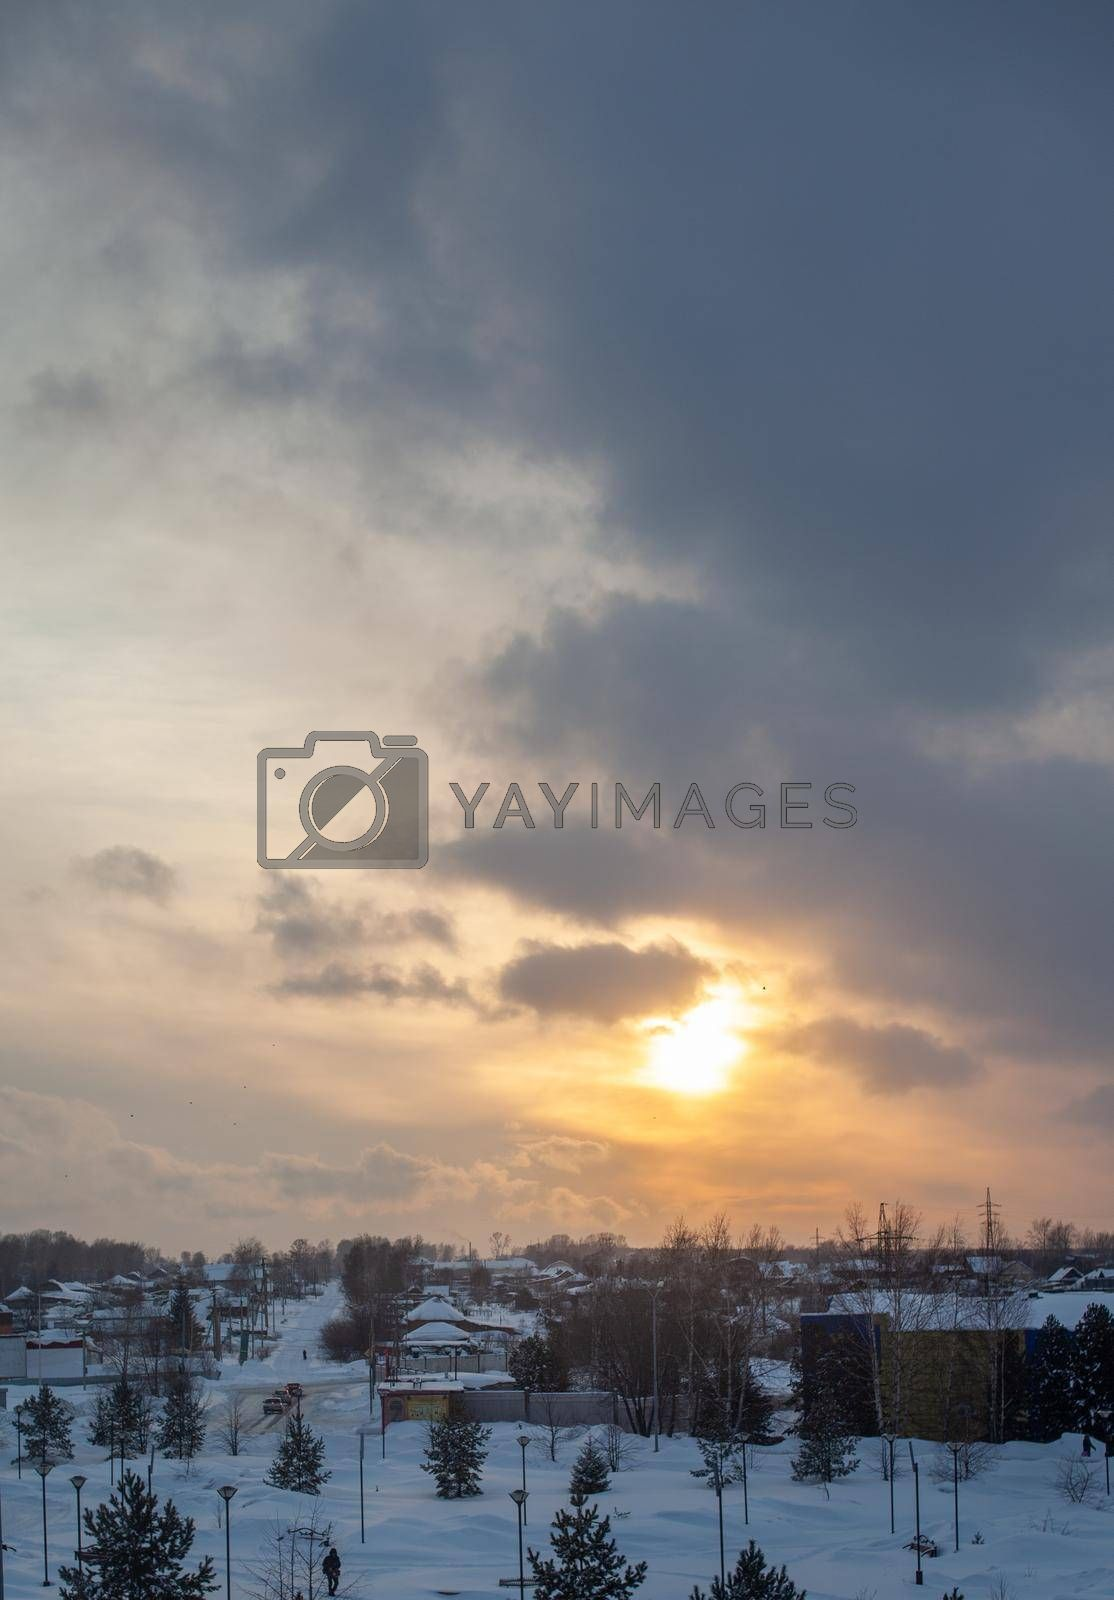 The sun among the clouds over the winter city. Beautiful background. The sky and clouds are painted in different colors.